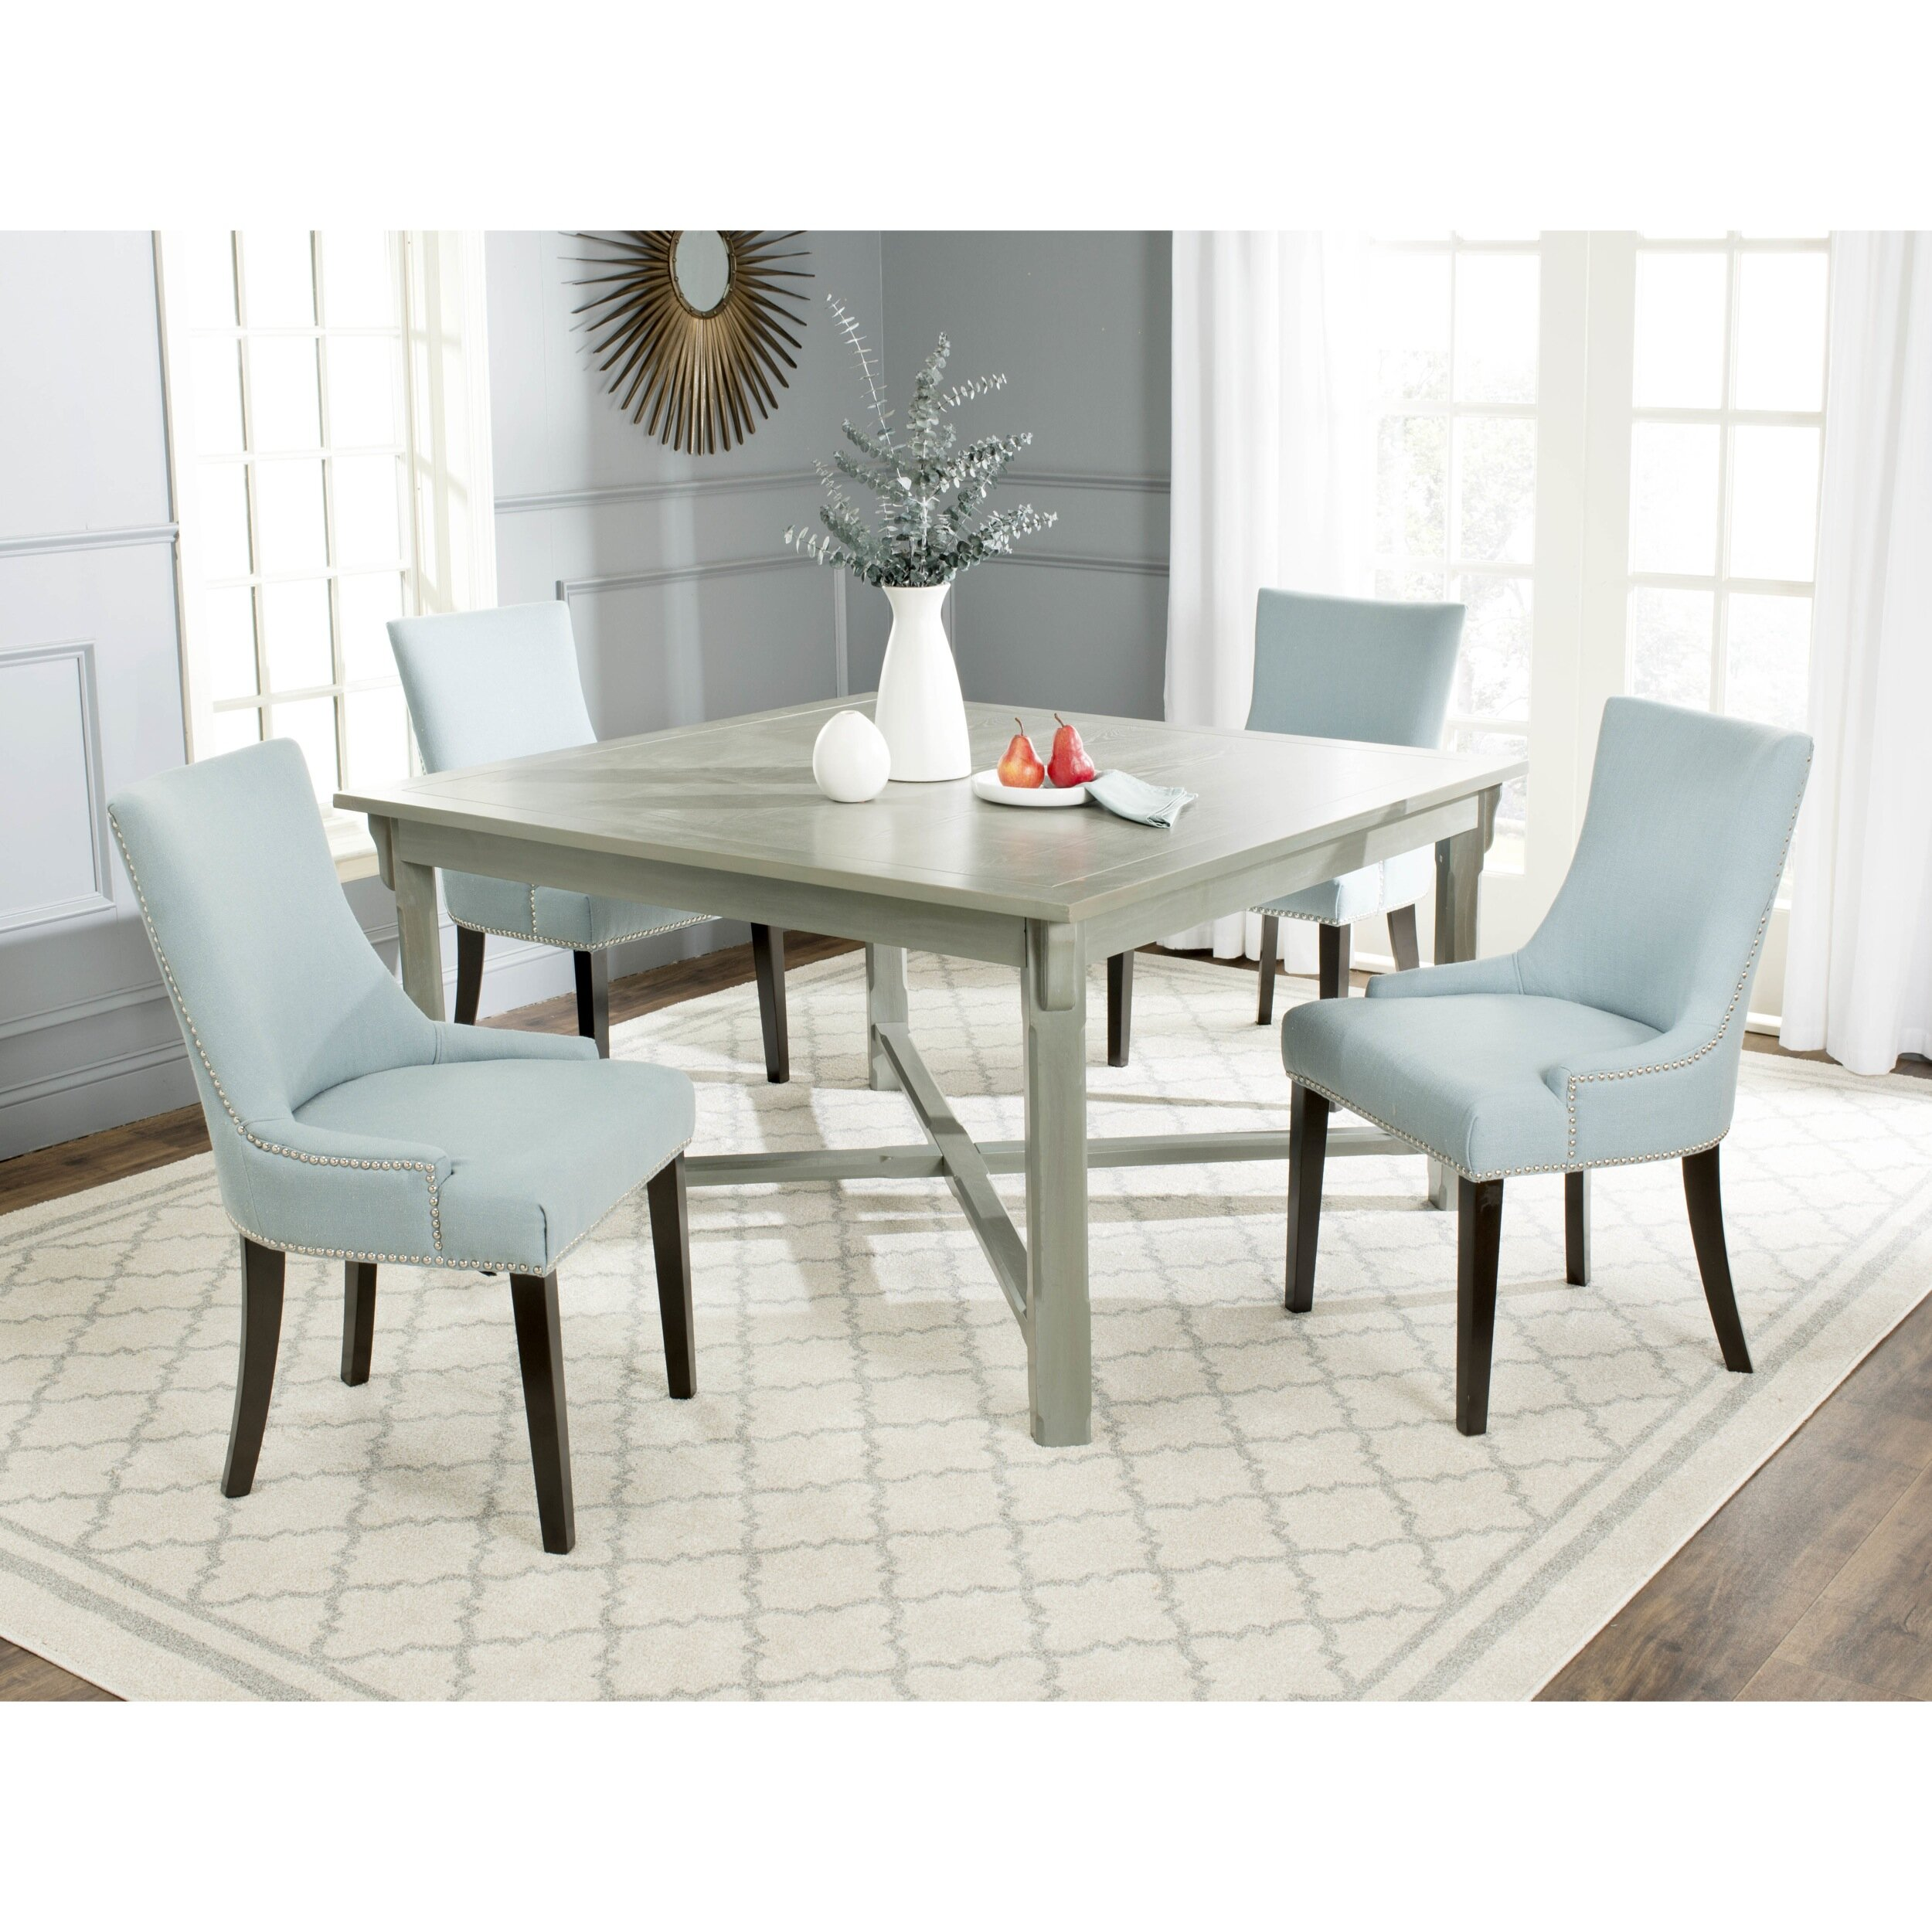 Safavieh bleeker dining table reviews wayfair for Wayfair furniture dining tables